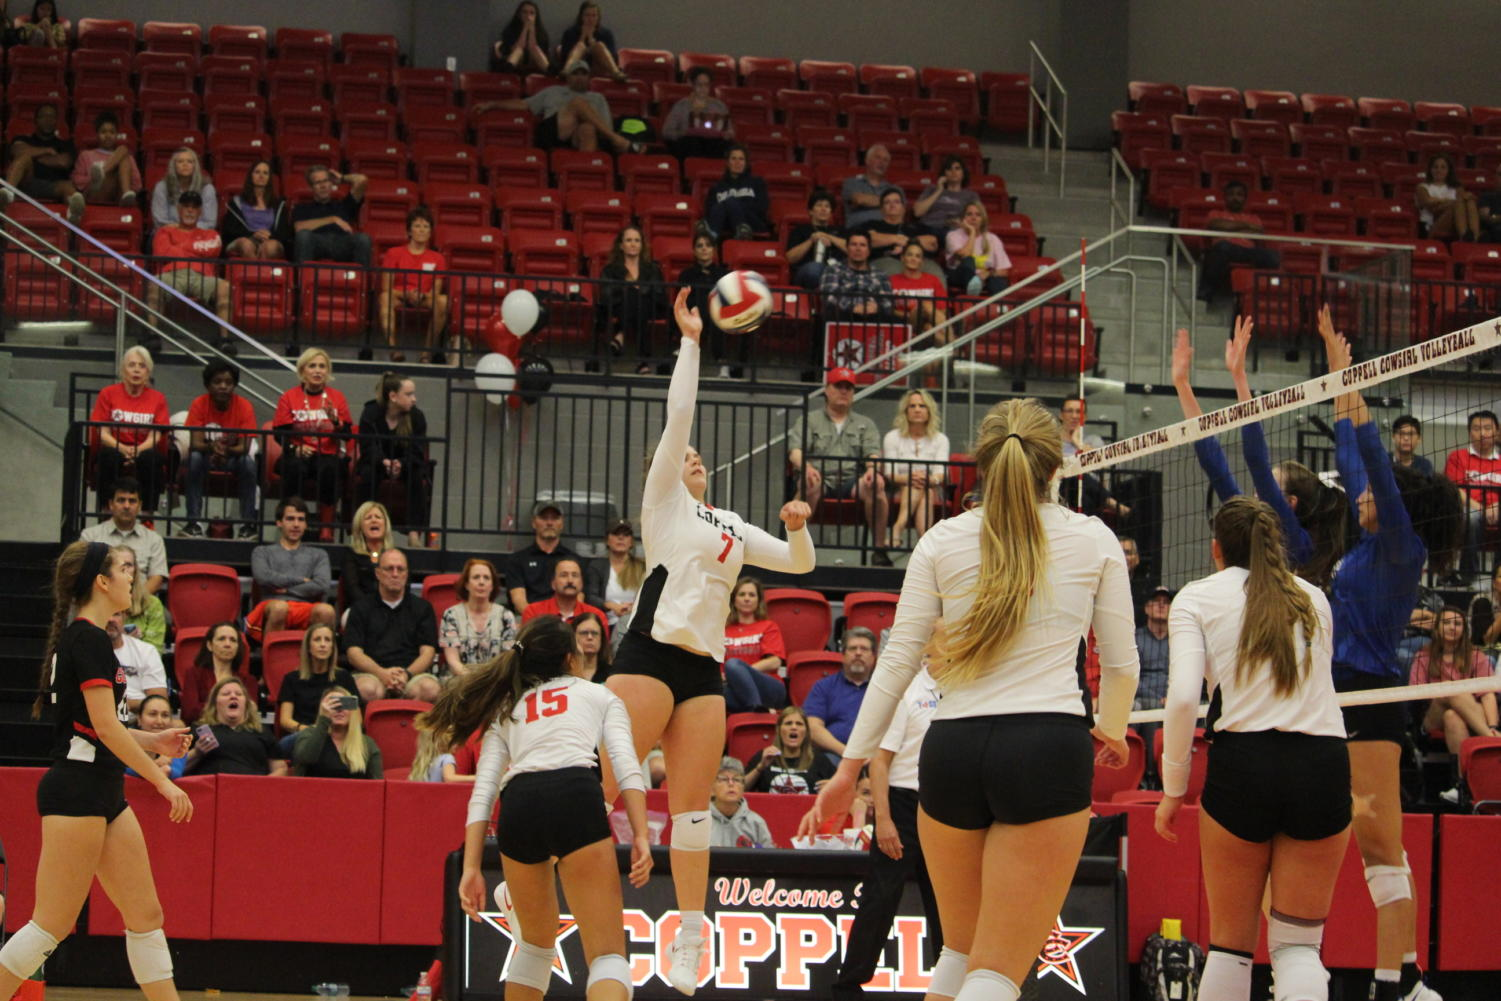 Coppell High School senior Pierce Woodall goes up to spike the ball during the match at CHS Arena against Waxahachie on August 11th. The Cowgirls beat the Waxahachie High School Indians, winning 2 out of 3 sets.